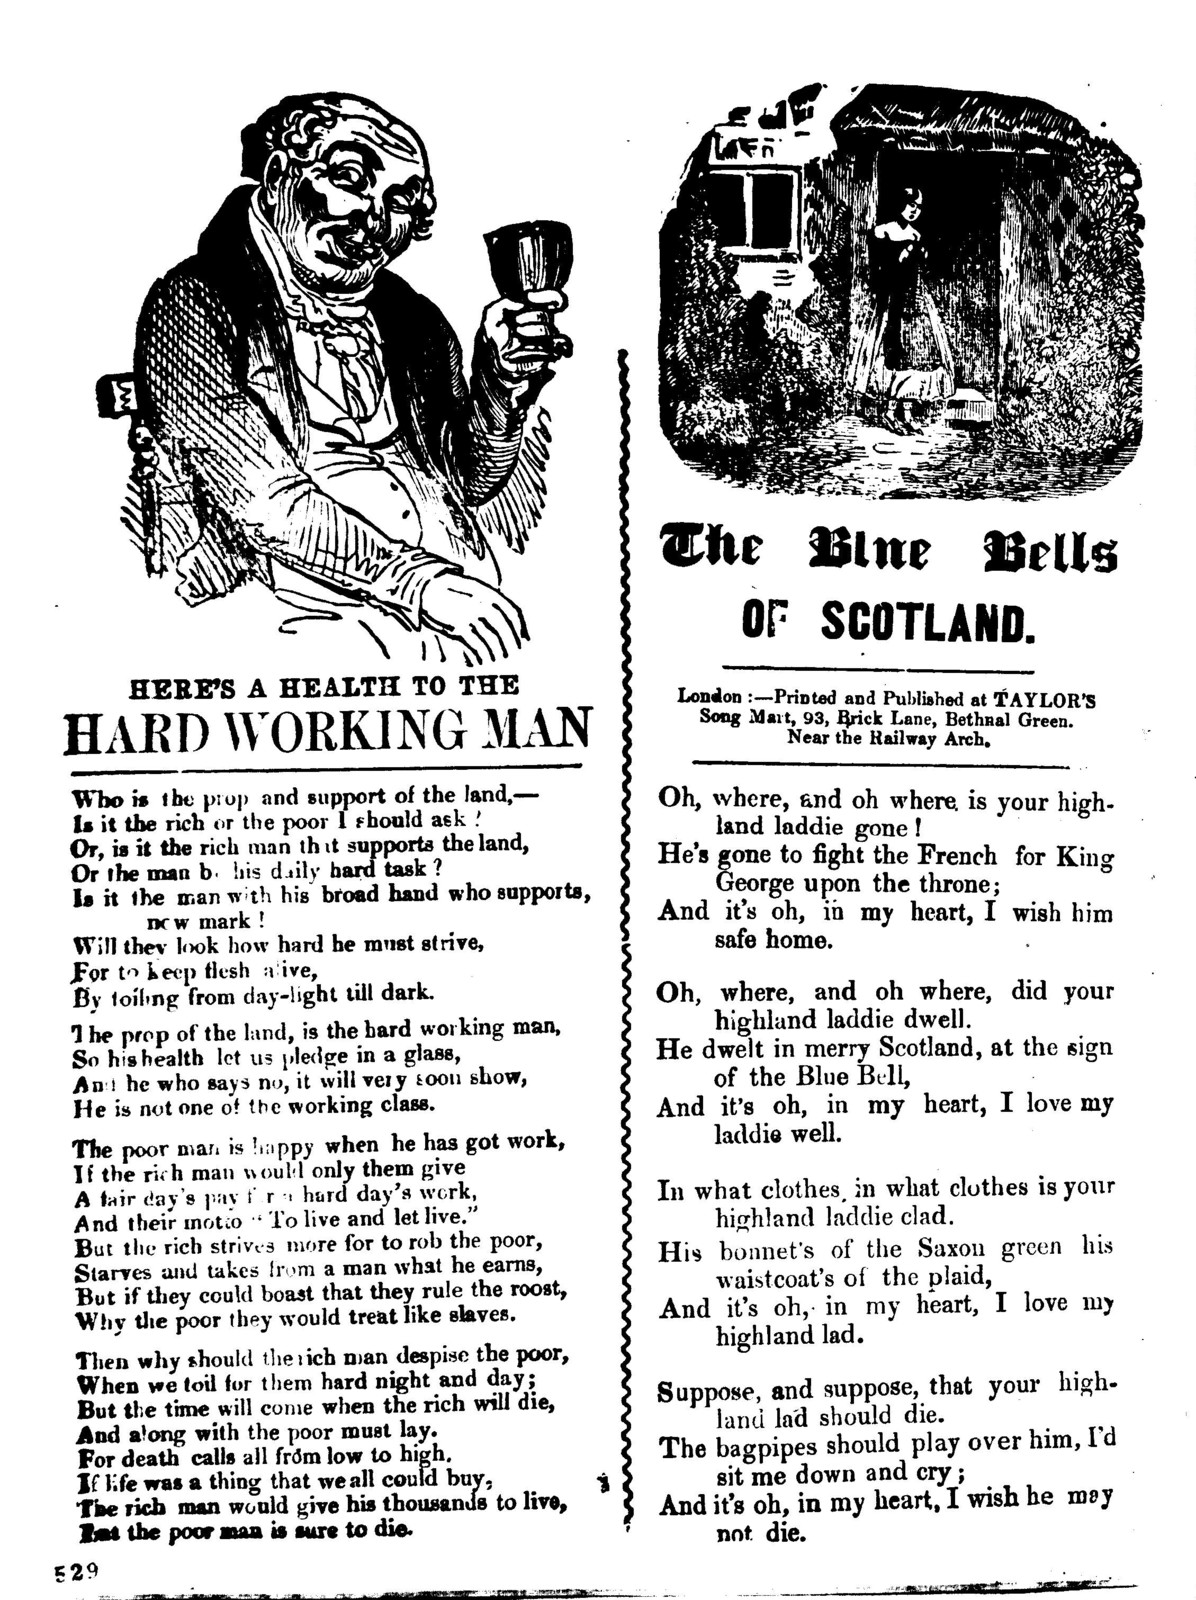 Here's a health to the hard working man. London: Printed and published at Taylor's Song Mart, 93, Brick Lane, Bethnal Green